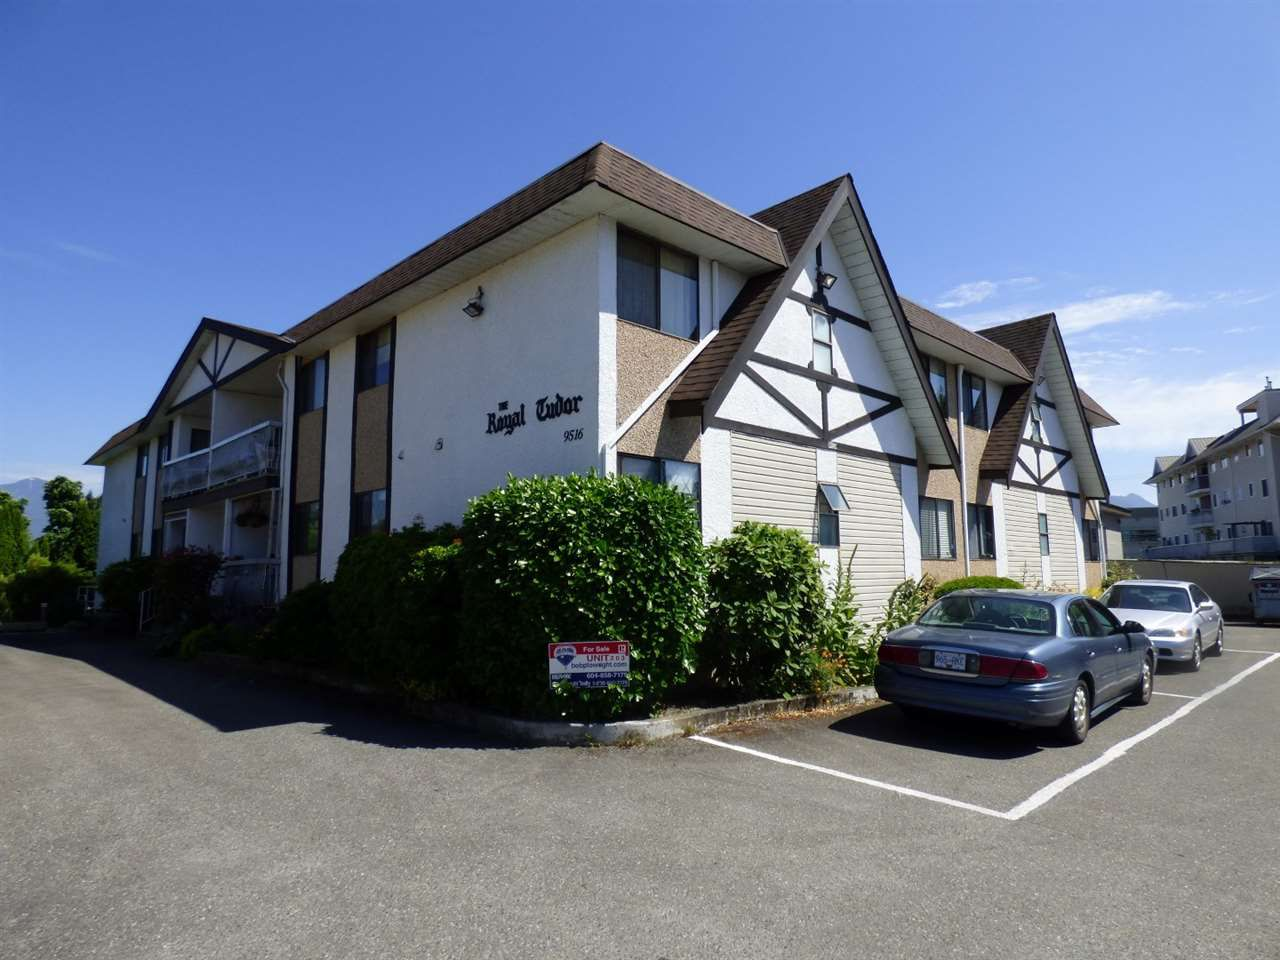 """Main Photo: 203 9516 ROTARY Street in Chilliwack: Chilliwack N Yale-Well Condo for sale in """"ROYAL TUDOR"""" : MLS®# R2181735"""